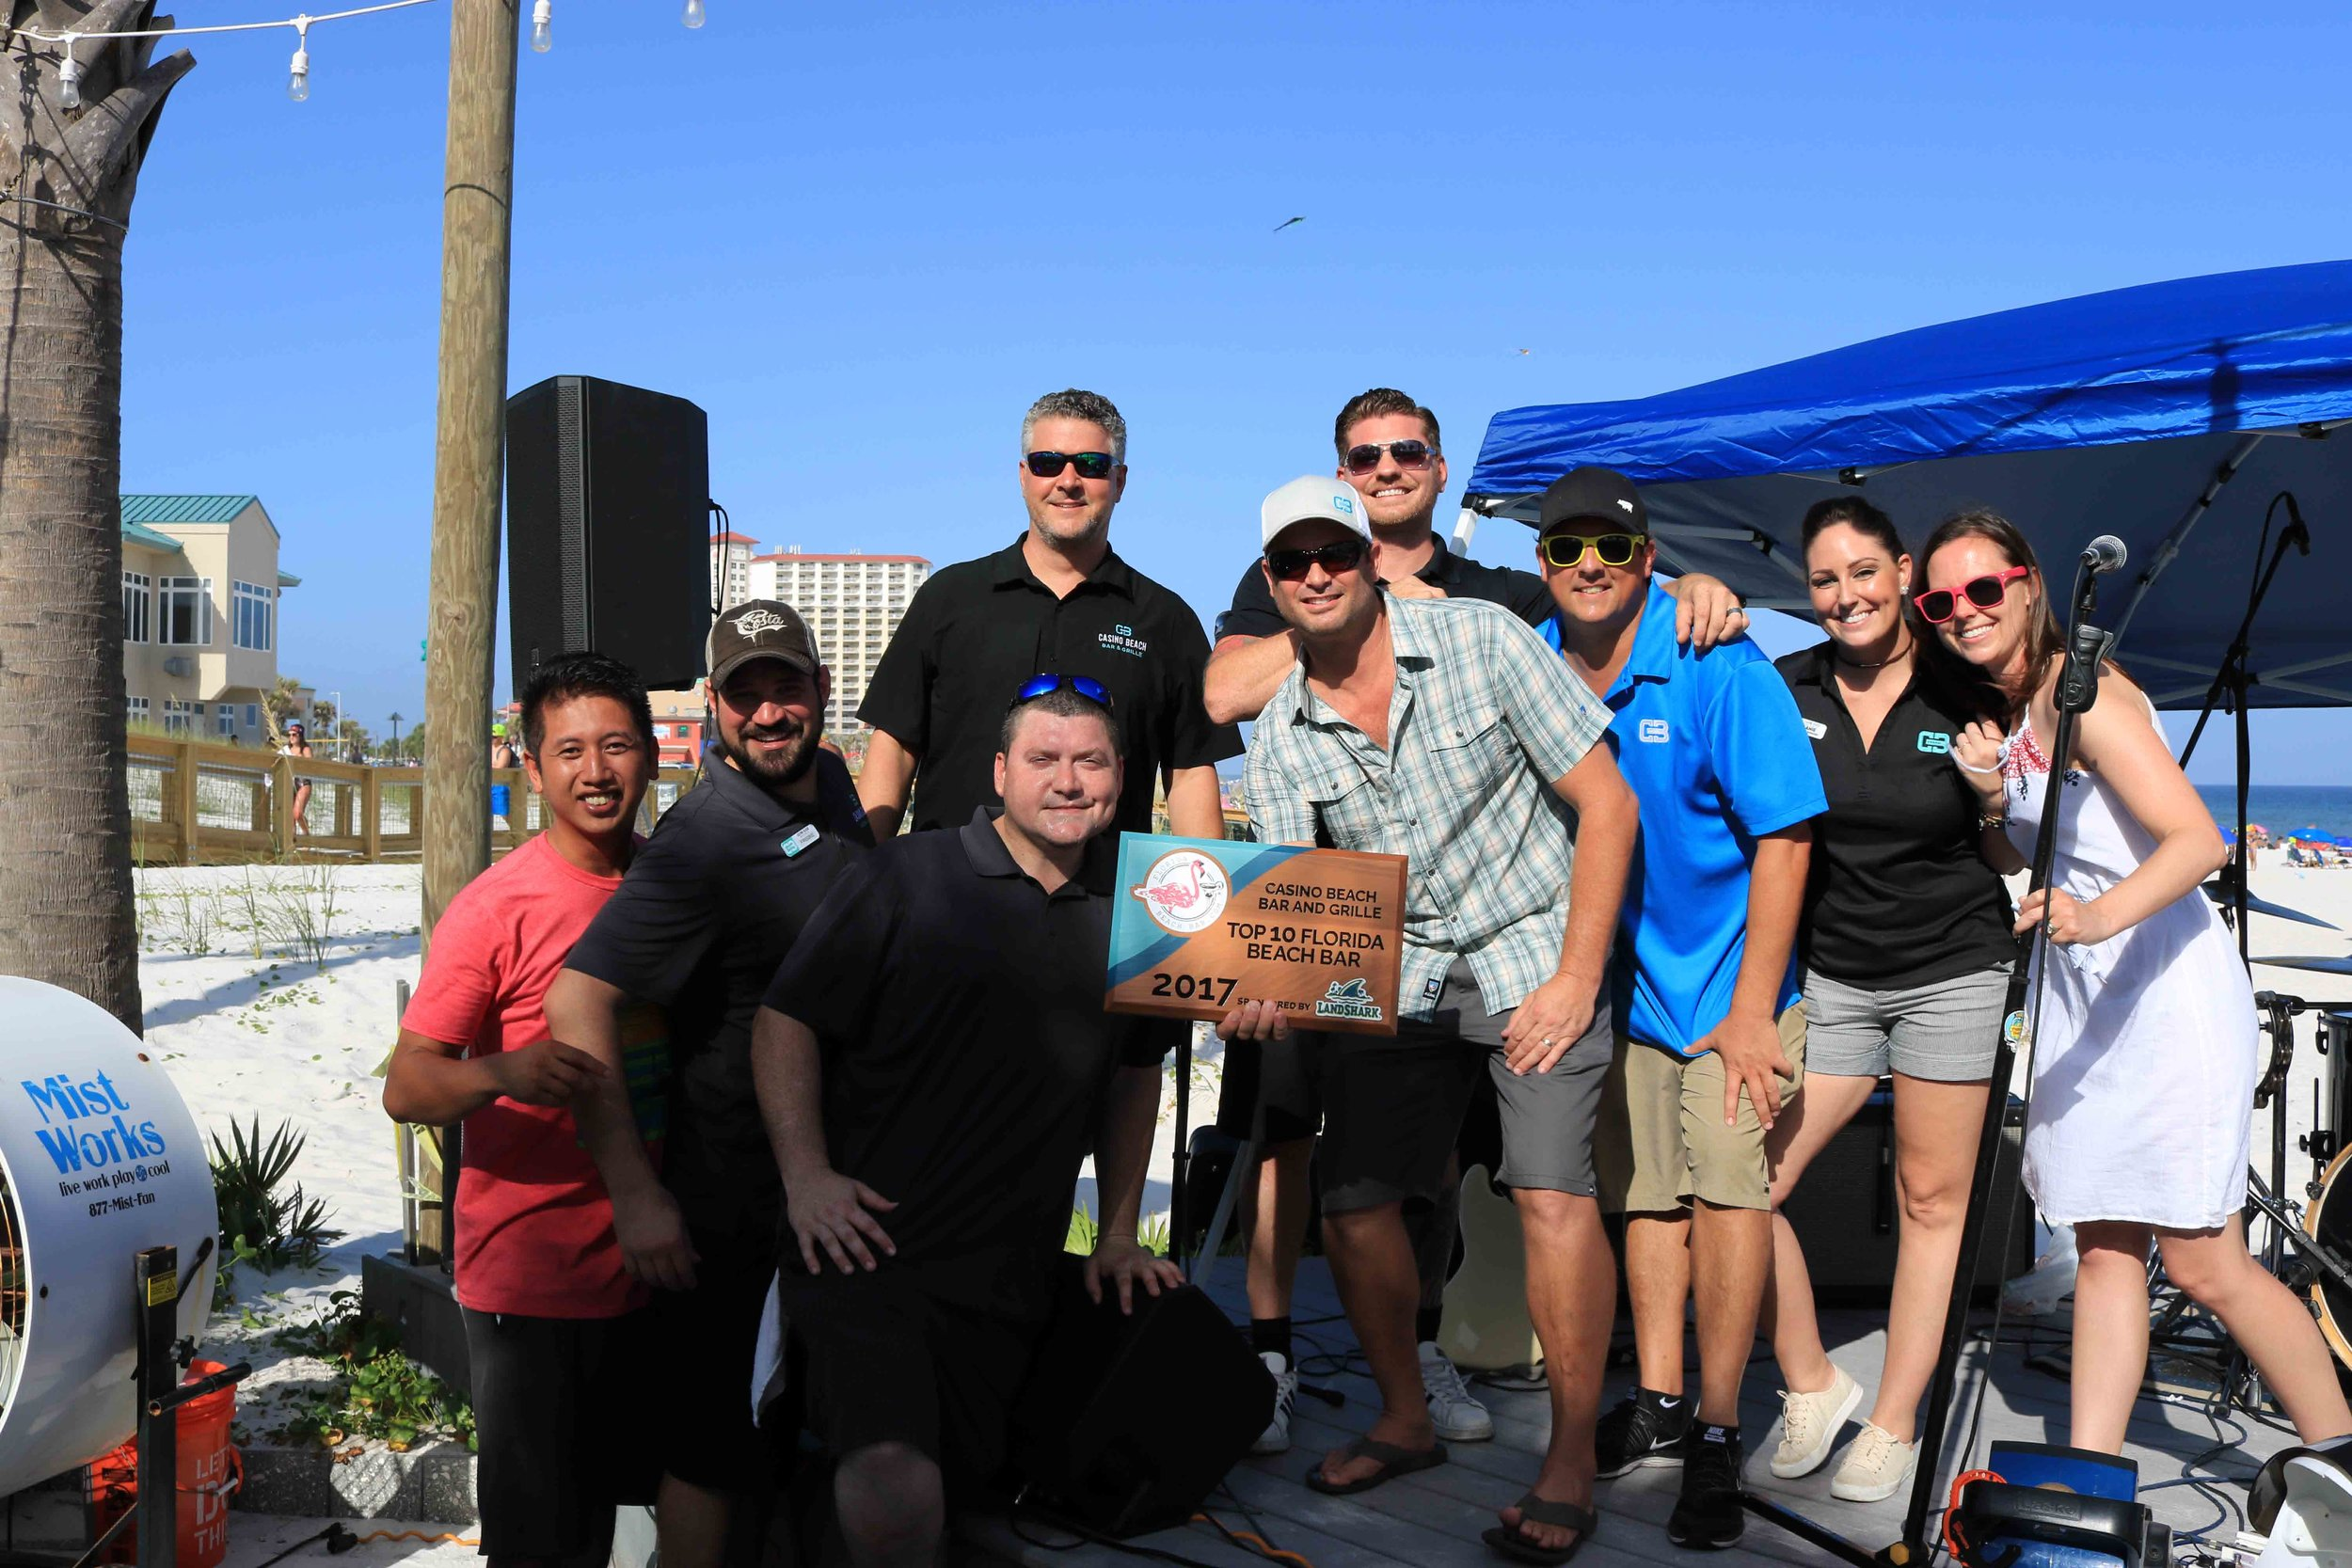 Matt and the team accept the 2017 Top 10 Florida Beach Bar award